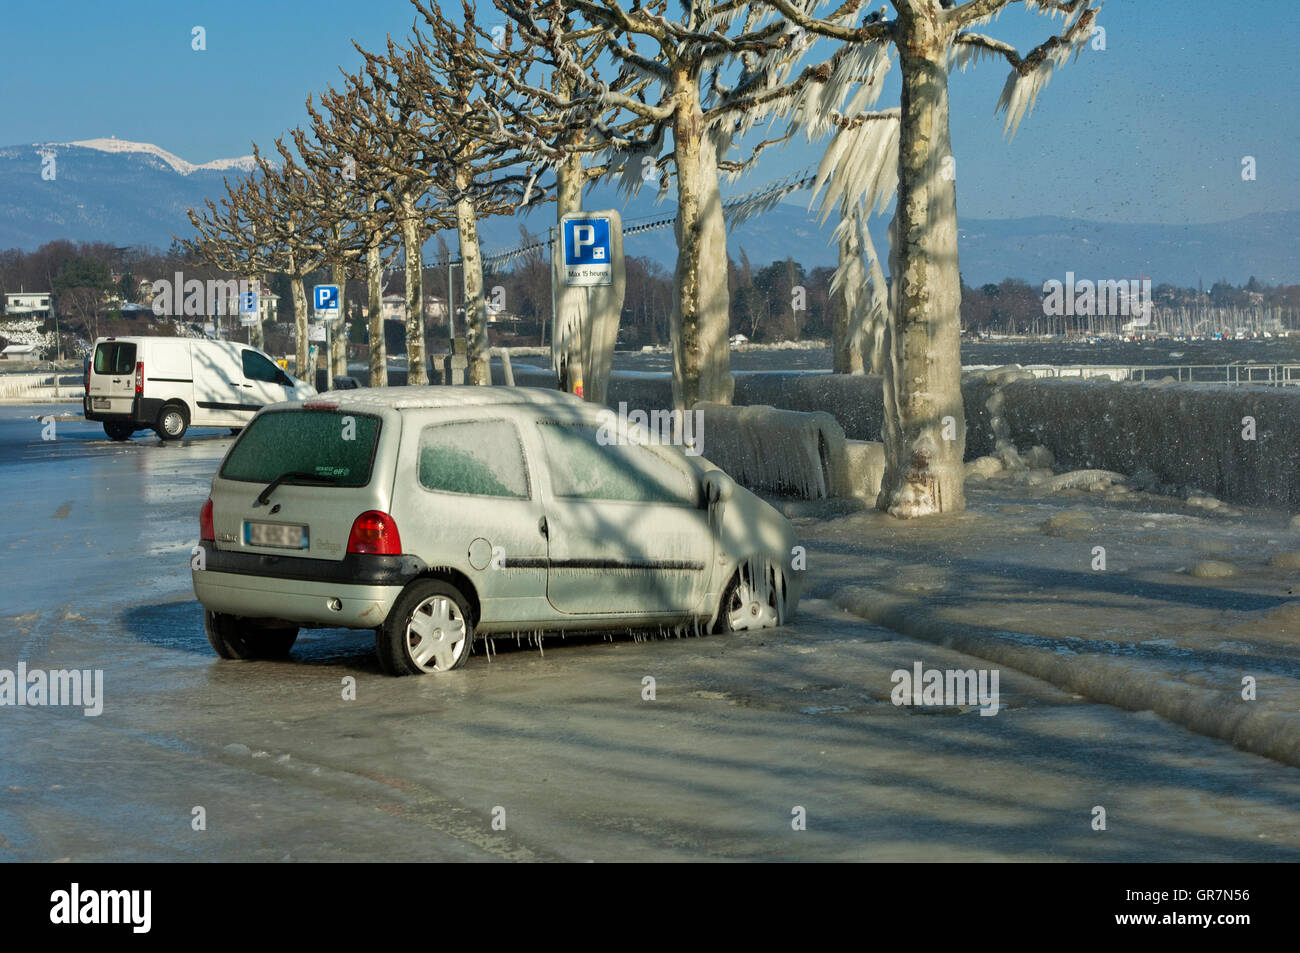 Car Covered With A Thick Layer Of Ice Parked In A Street Along Lake Geneva In Versoix, Switzerland - Stock Image